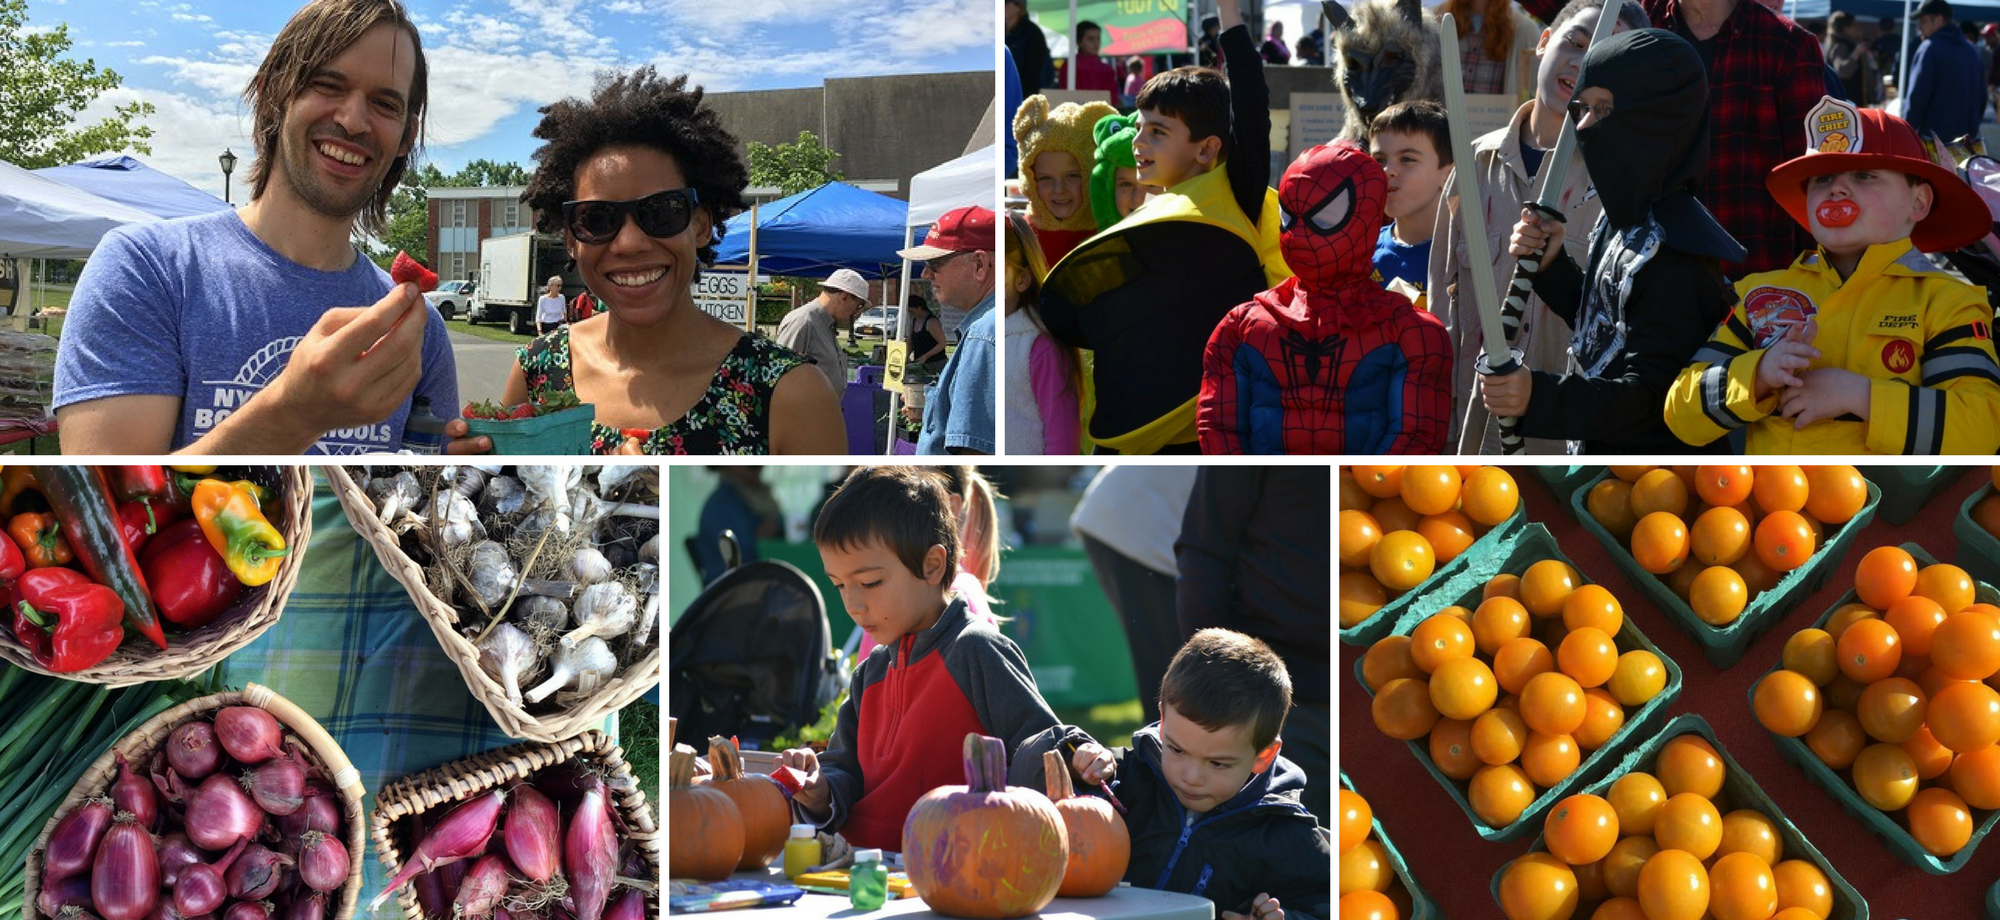 Harvest Festival, Downtown Pittsfield, MA